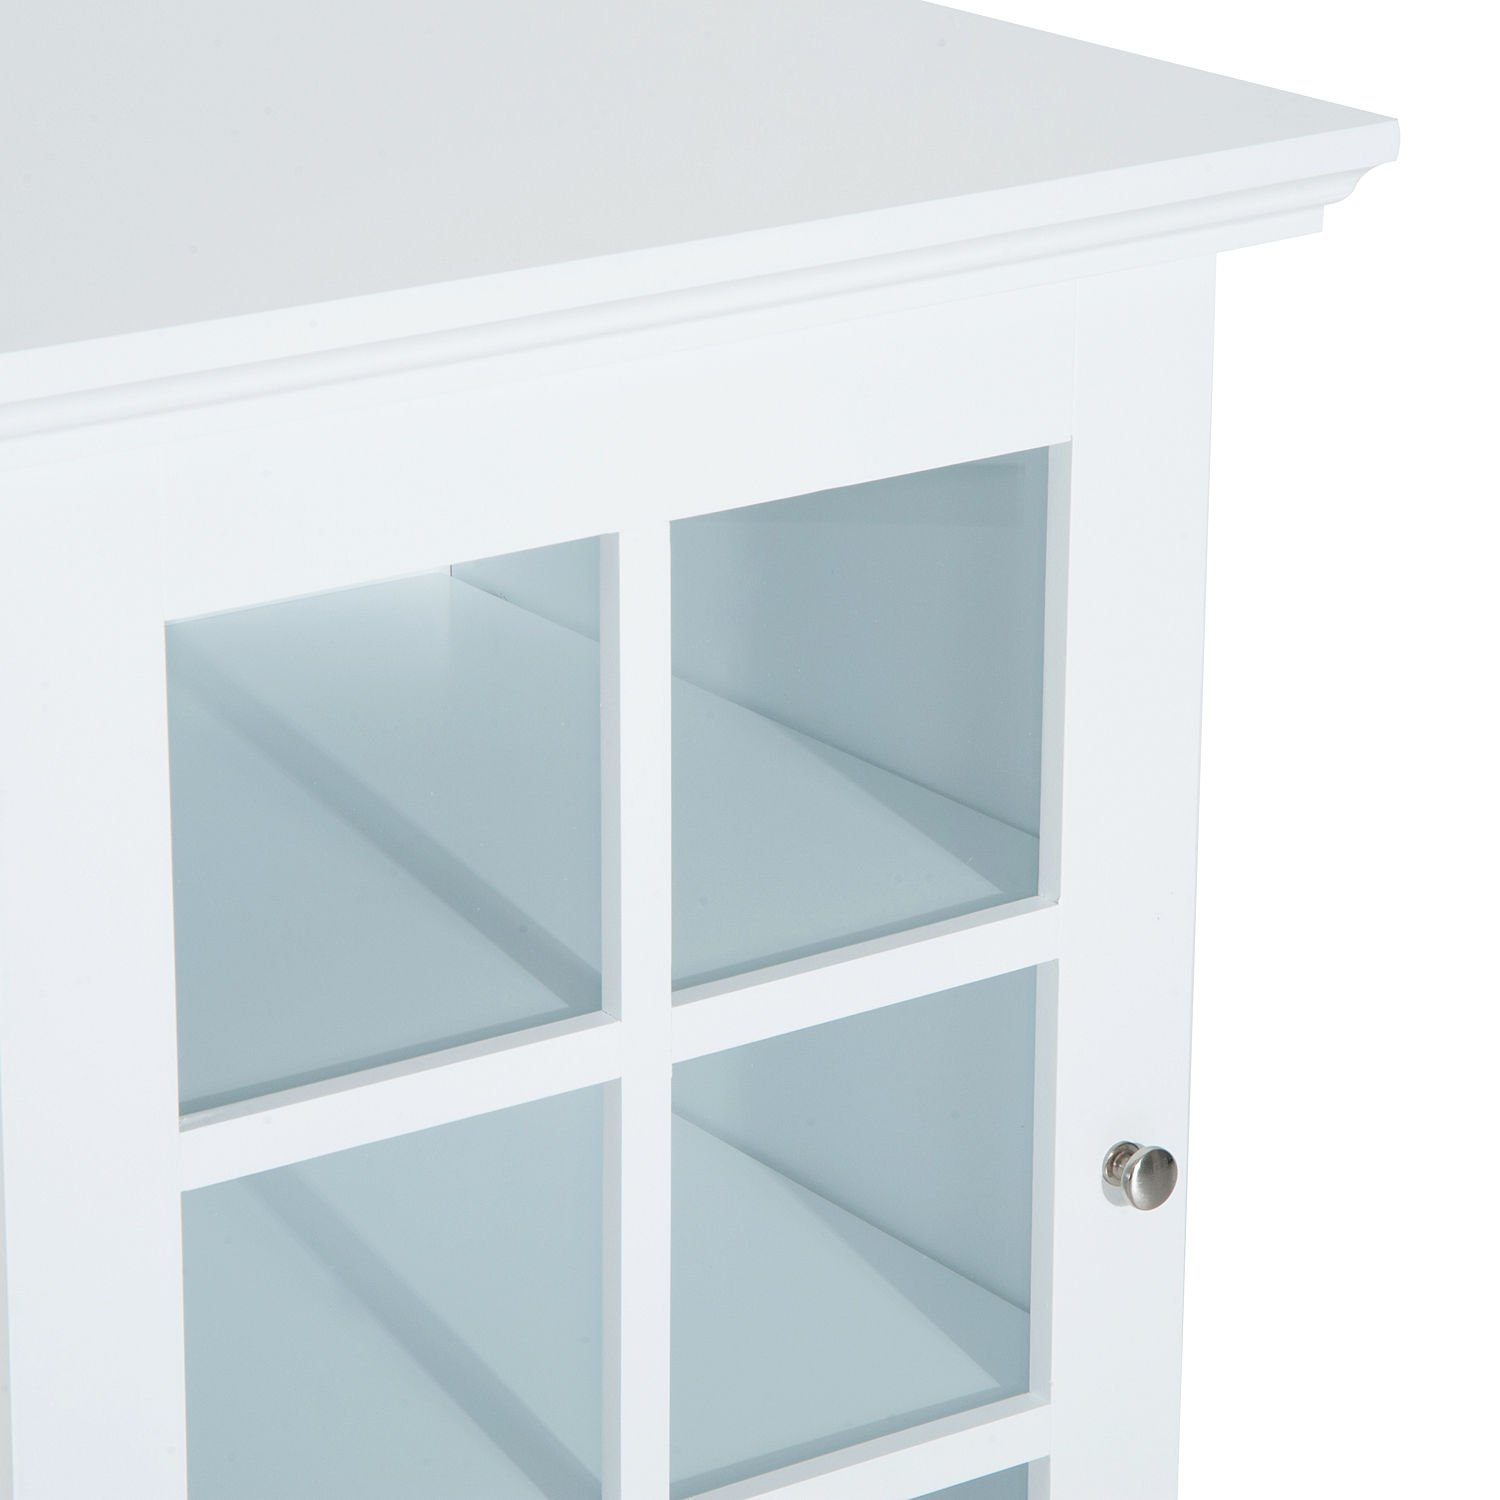 New White Wood Cabinet Storage Hutch Kitchen Bathroom Bedroom Single Glassed Door Shelves by totoshop (Image #7)